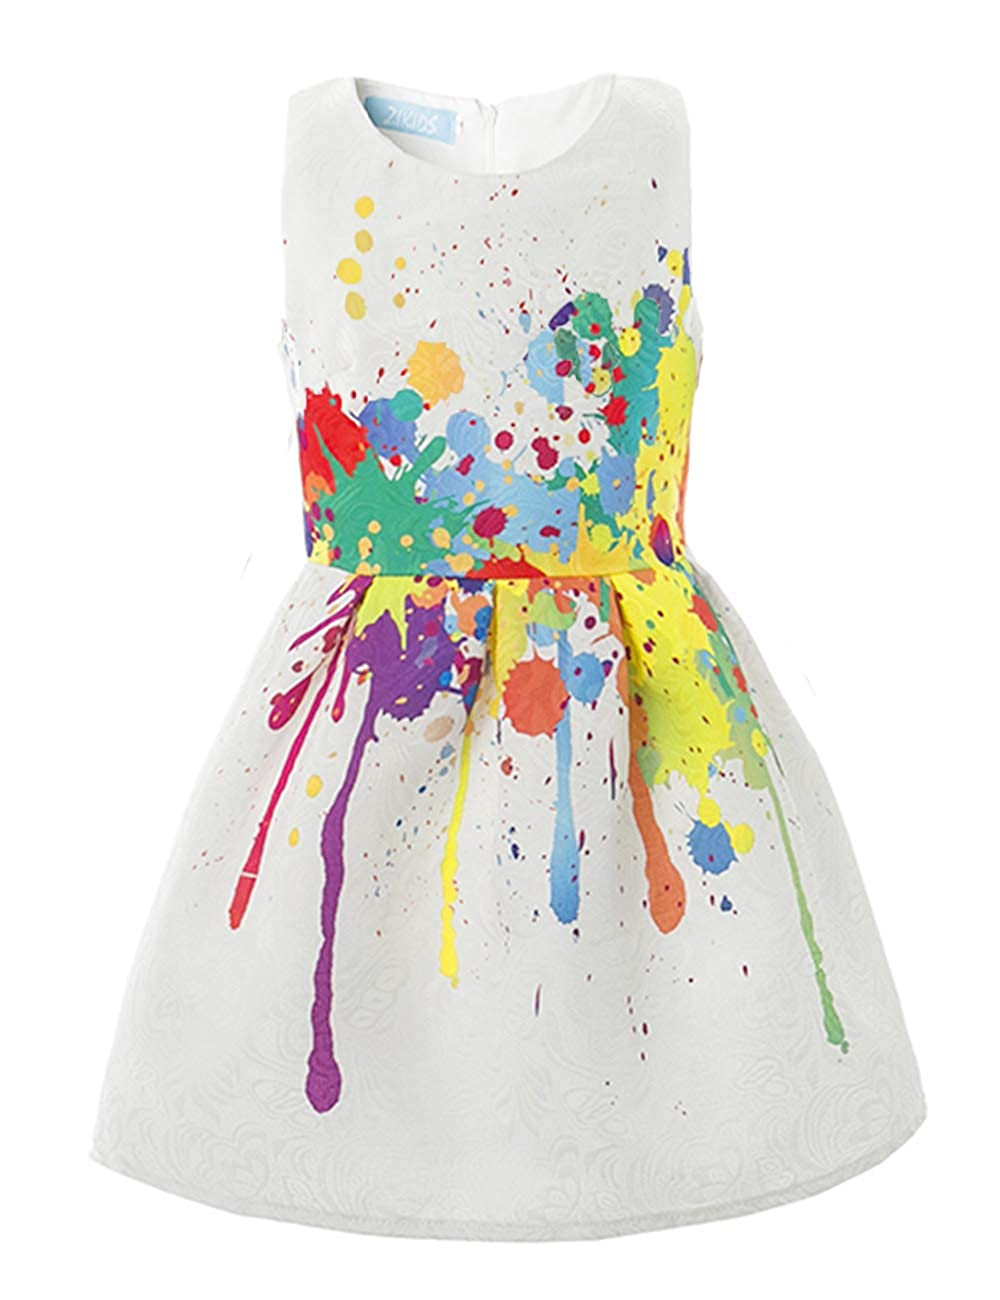 55861e6dadbe Art paint dress,Owl Dress,Color House Dress,Crown dress,Rose dress,Banana  leaf dress,Butterfly dress.These Cotton Summer and Fall dress for girls,The  best ...